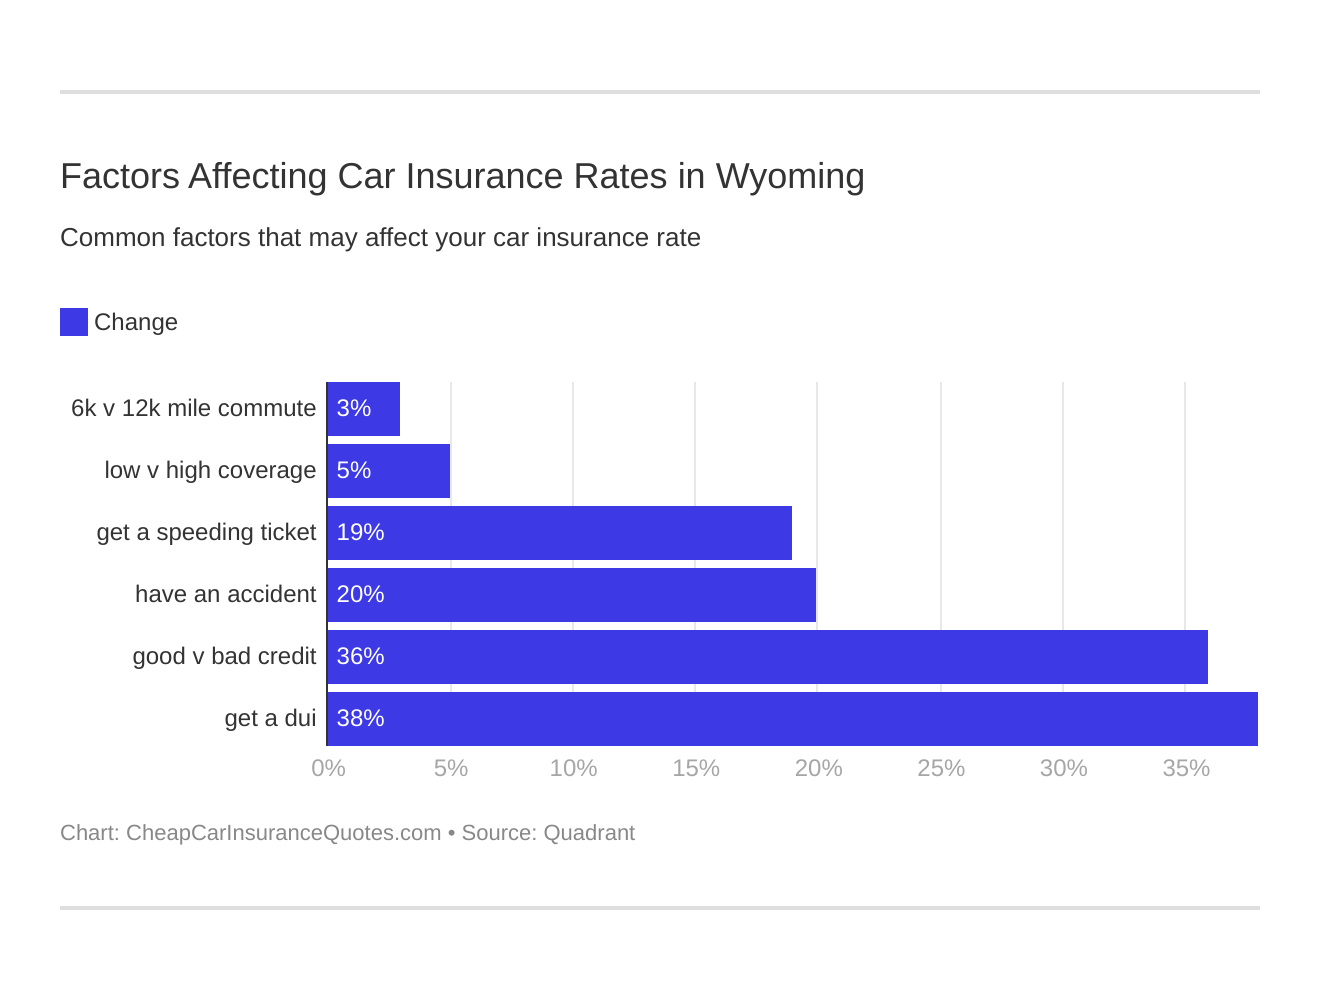 Factors Affecting Car Insurance Rates in Wyoming